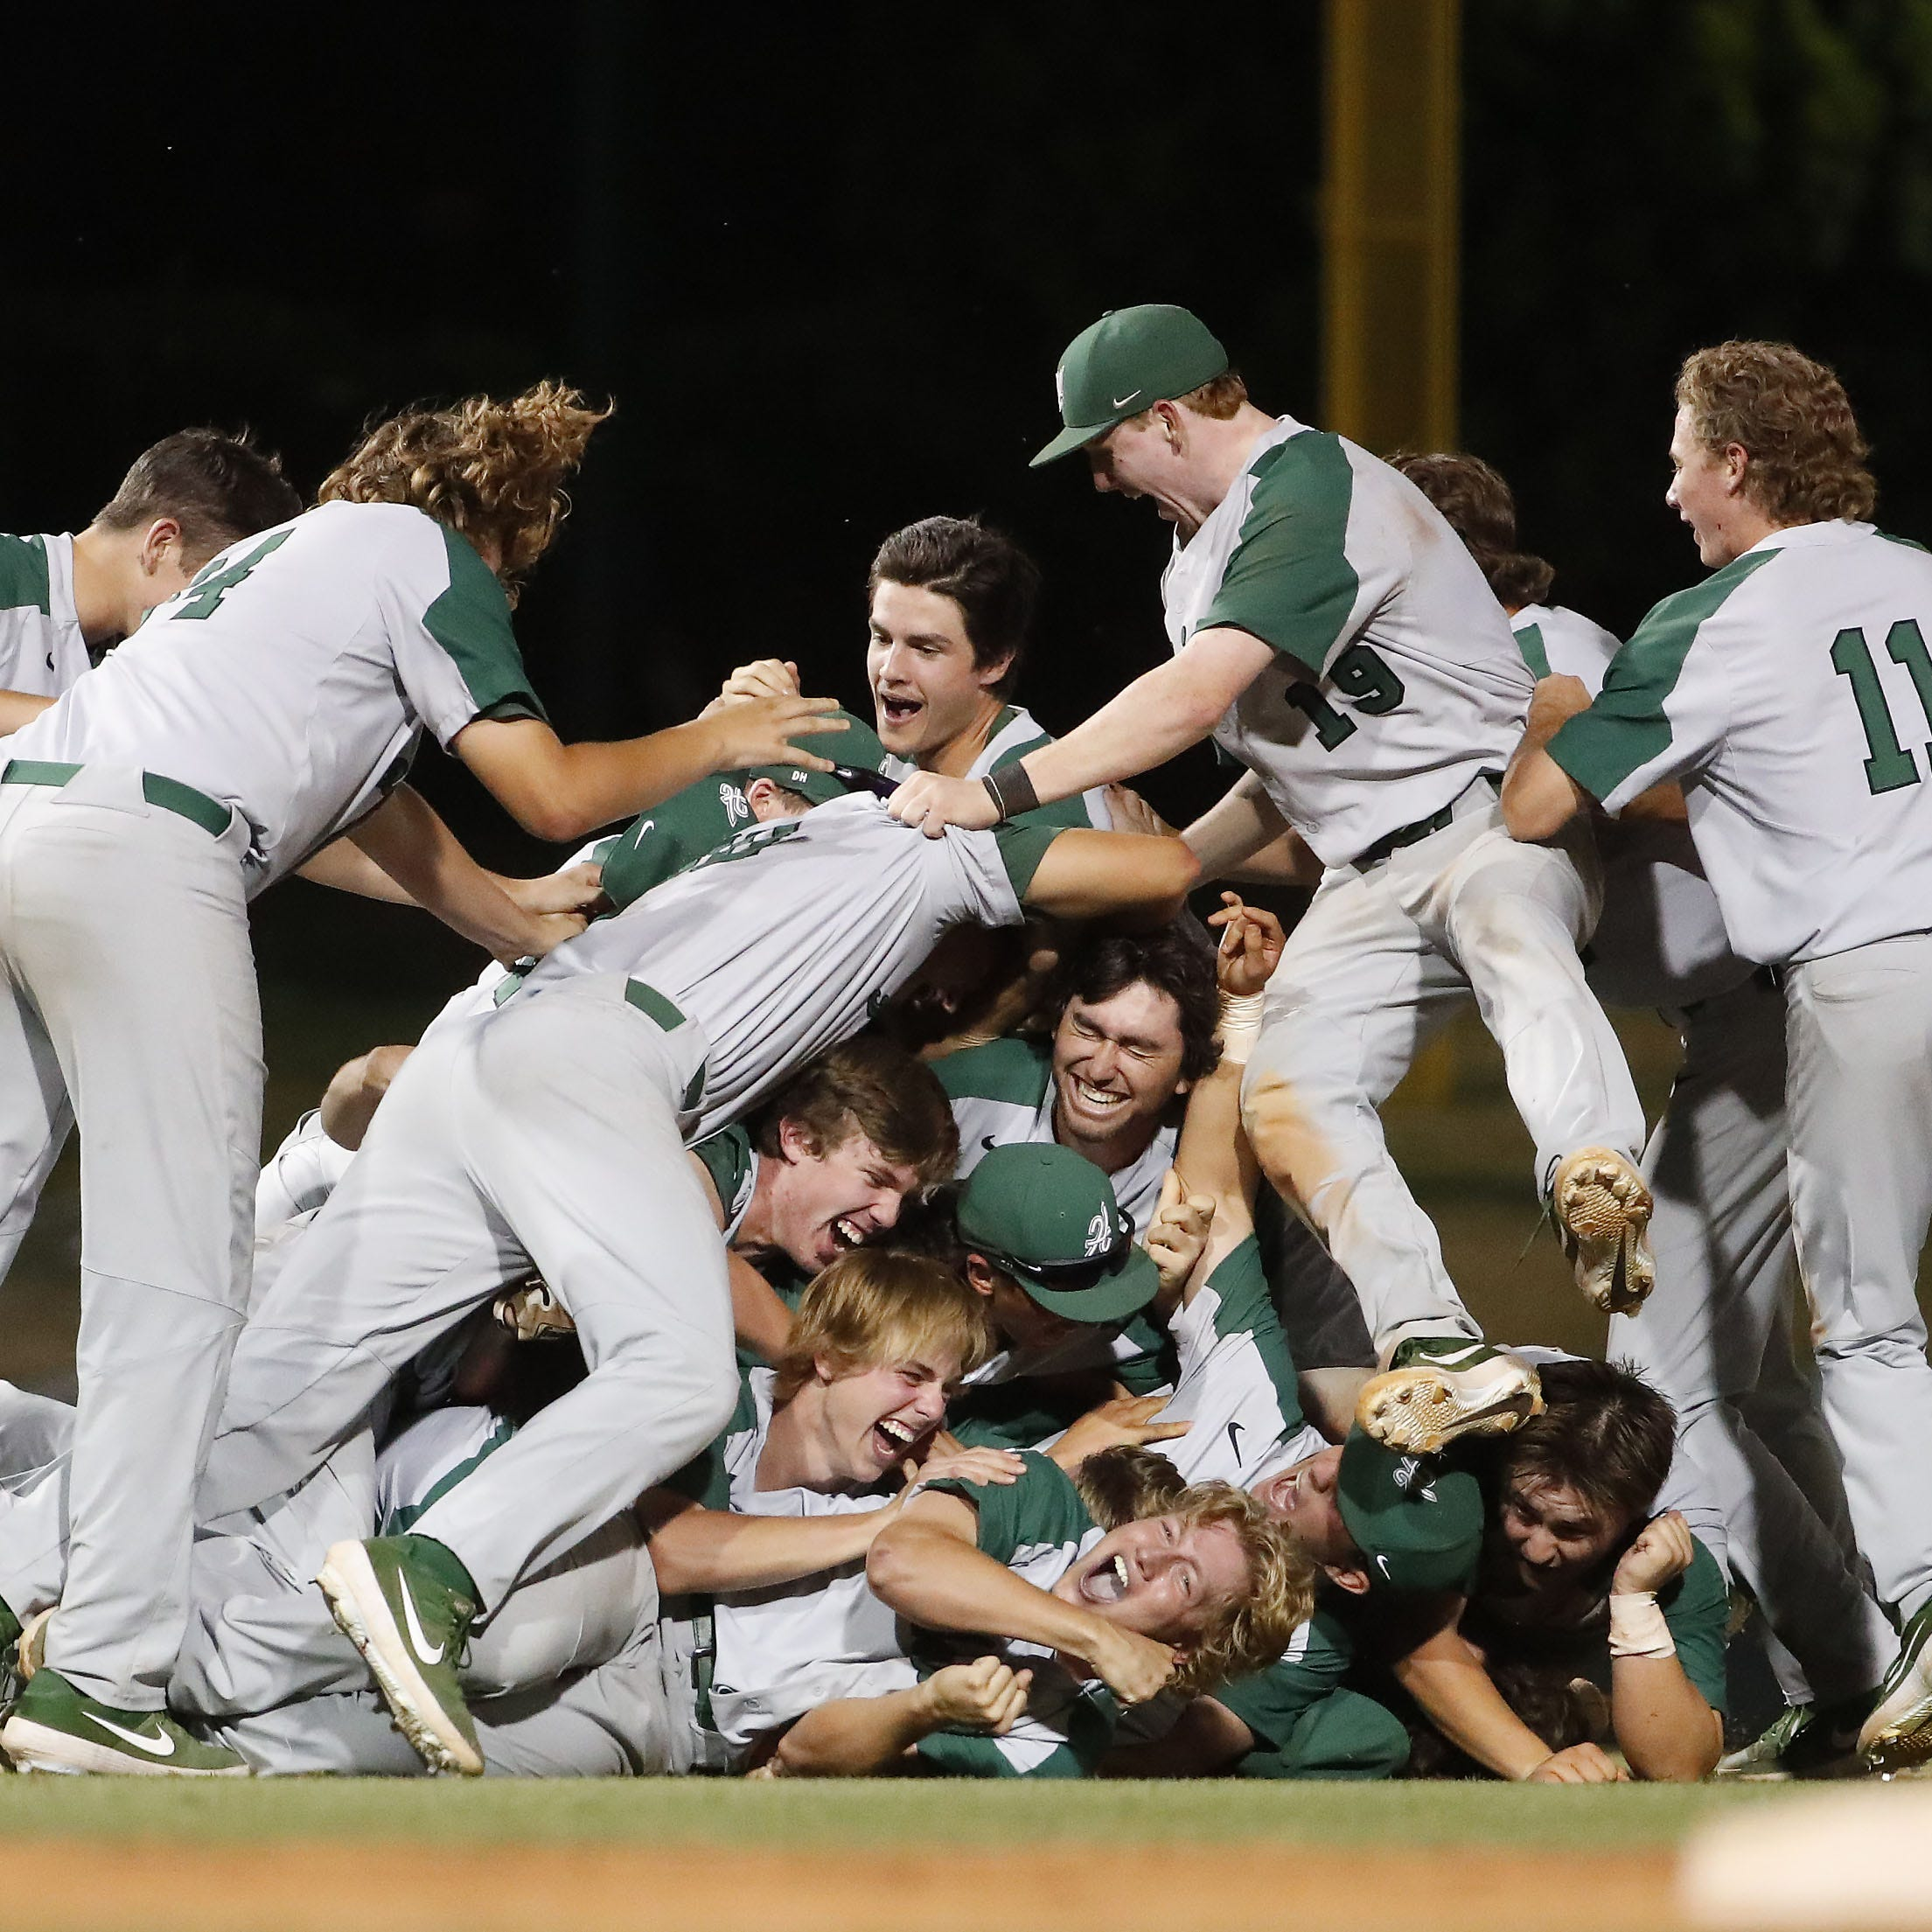 Horizon players celebrate after beating Nogales 7-4 in 16 innings to win the 5A State Baseball Championship in Tempe, Ariz. May 14, 2019.